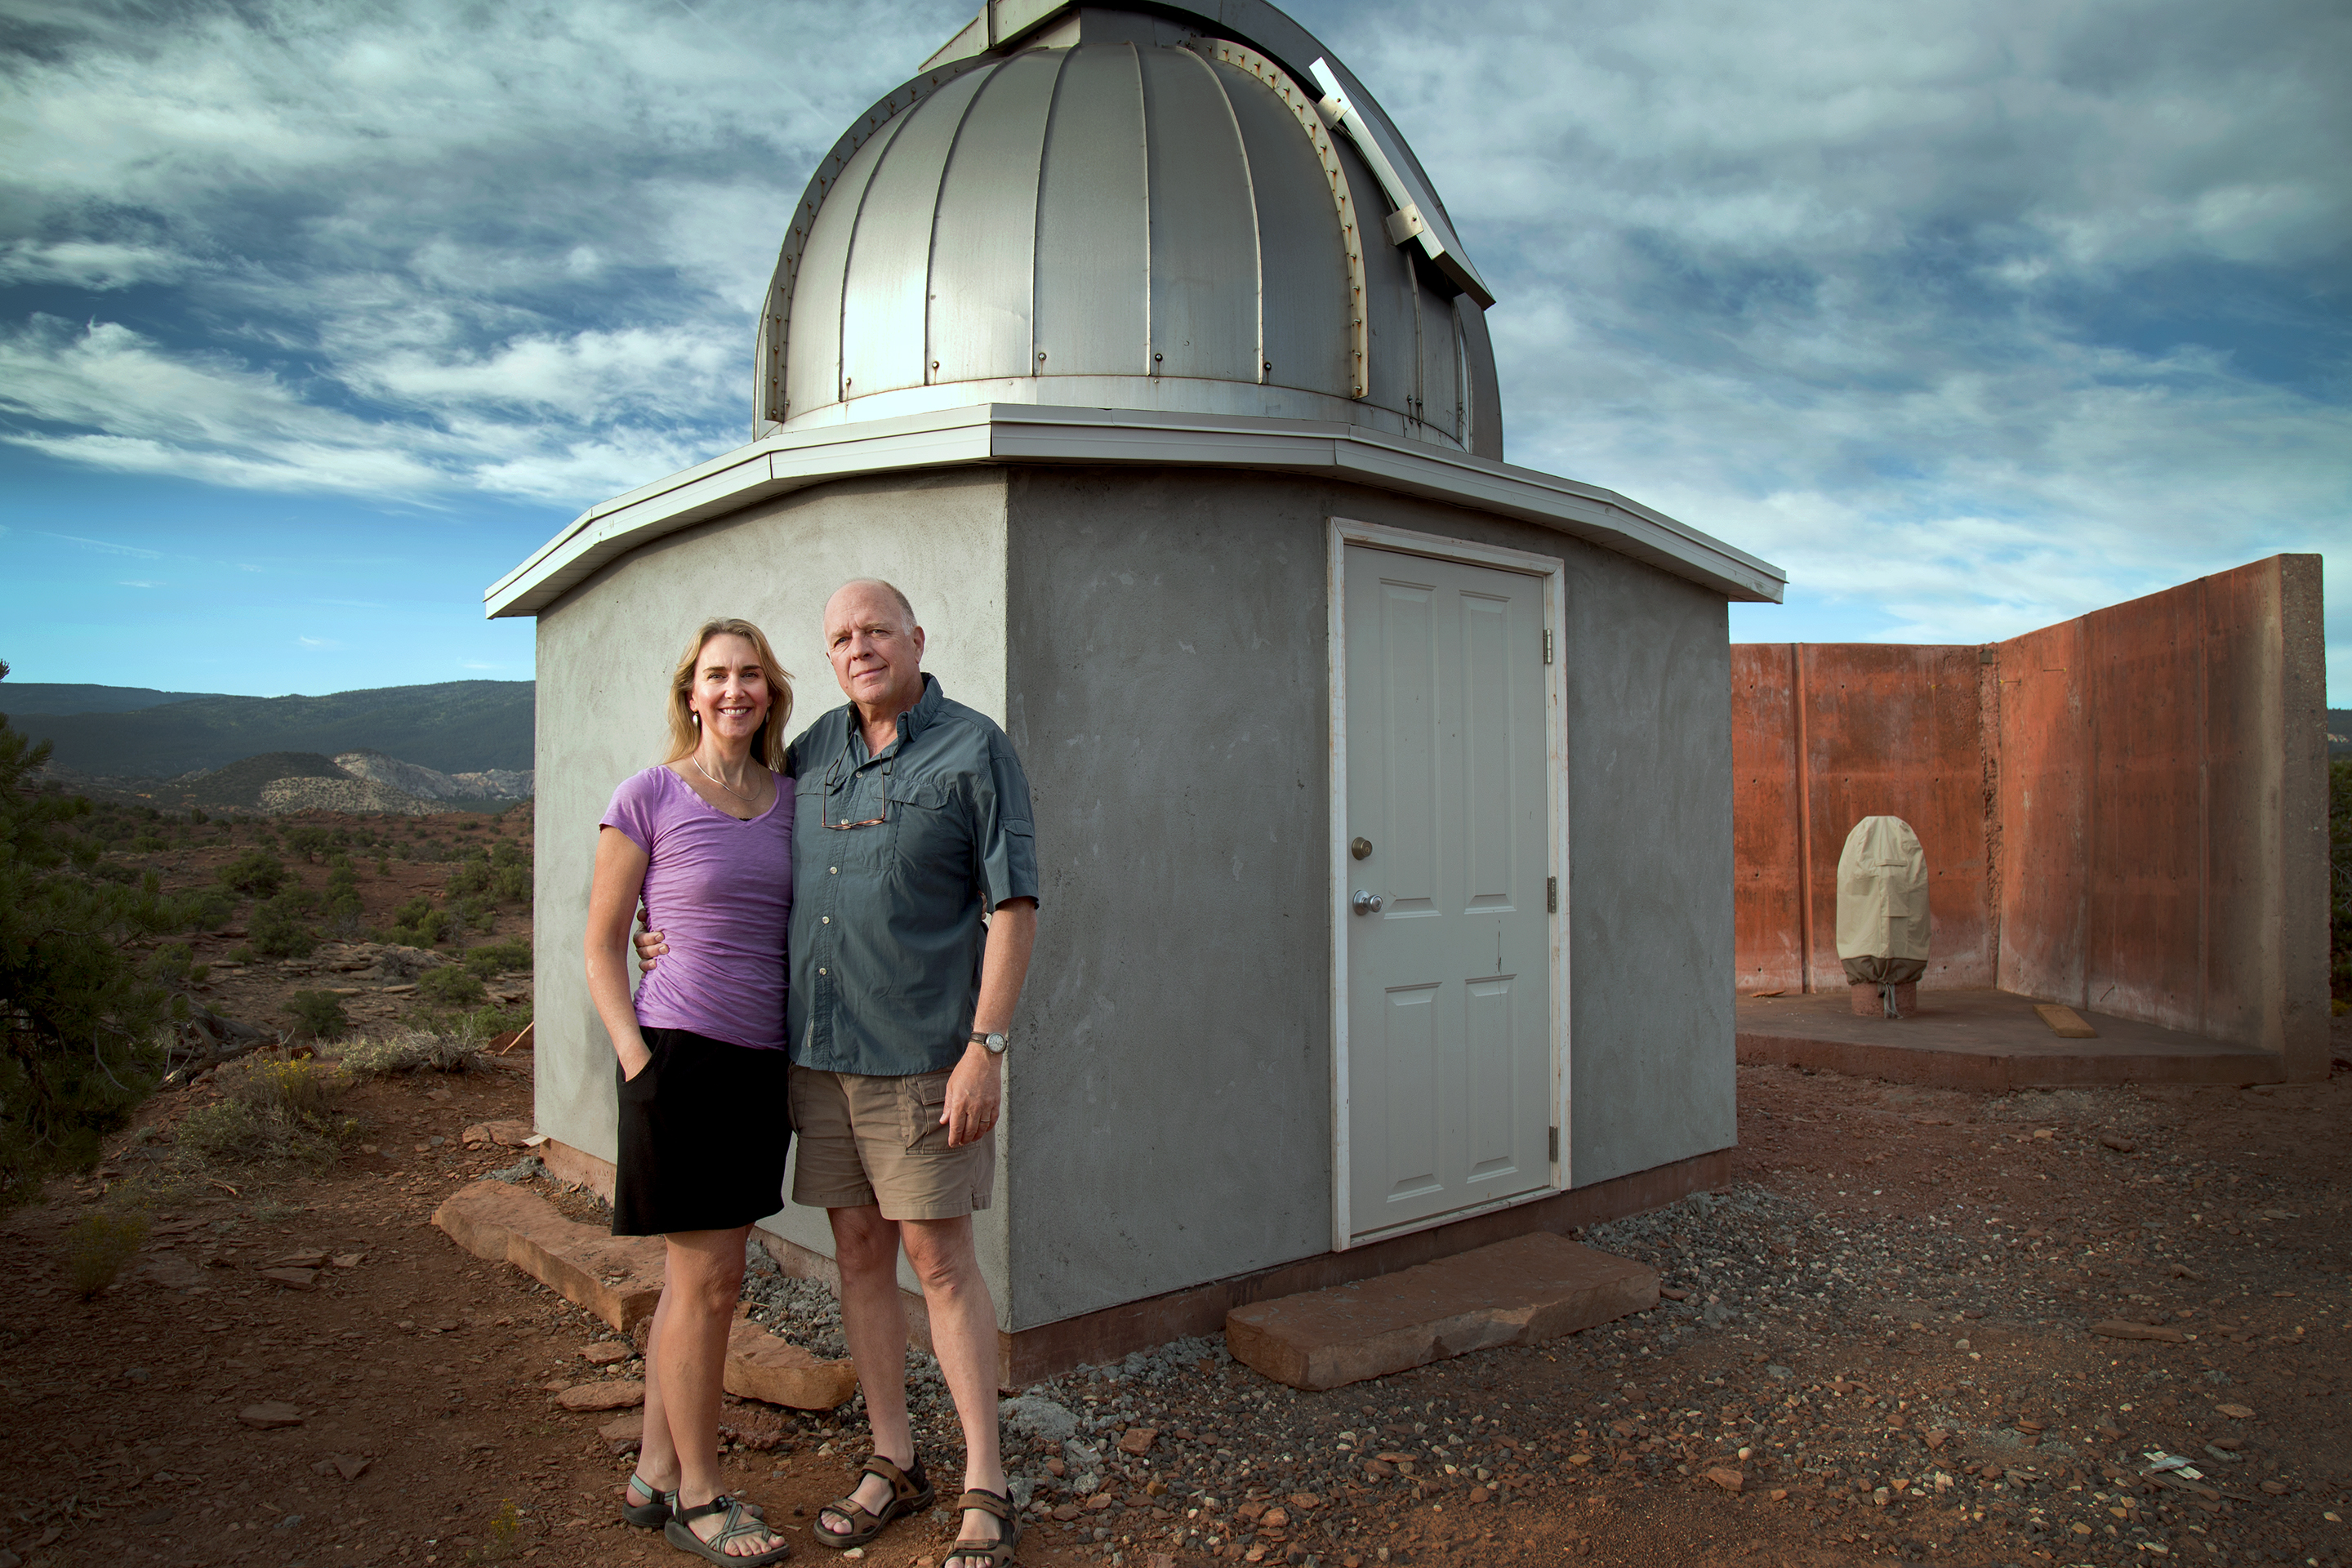 (Photo courtesy of Mark Bailey) Kirsten and Mark Bailey stand next to their Torrey House Alpenglow Observatory. The observatory is a gift from Mark's father that formerly occupied his back yard in Salt Lake City. The research-grade observatory is completely automated and can be operated remotely. Bailey now captures astrophotography with the telescope's CCD camera, recording photos of galaxies, stars and nebulae.